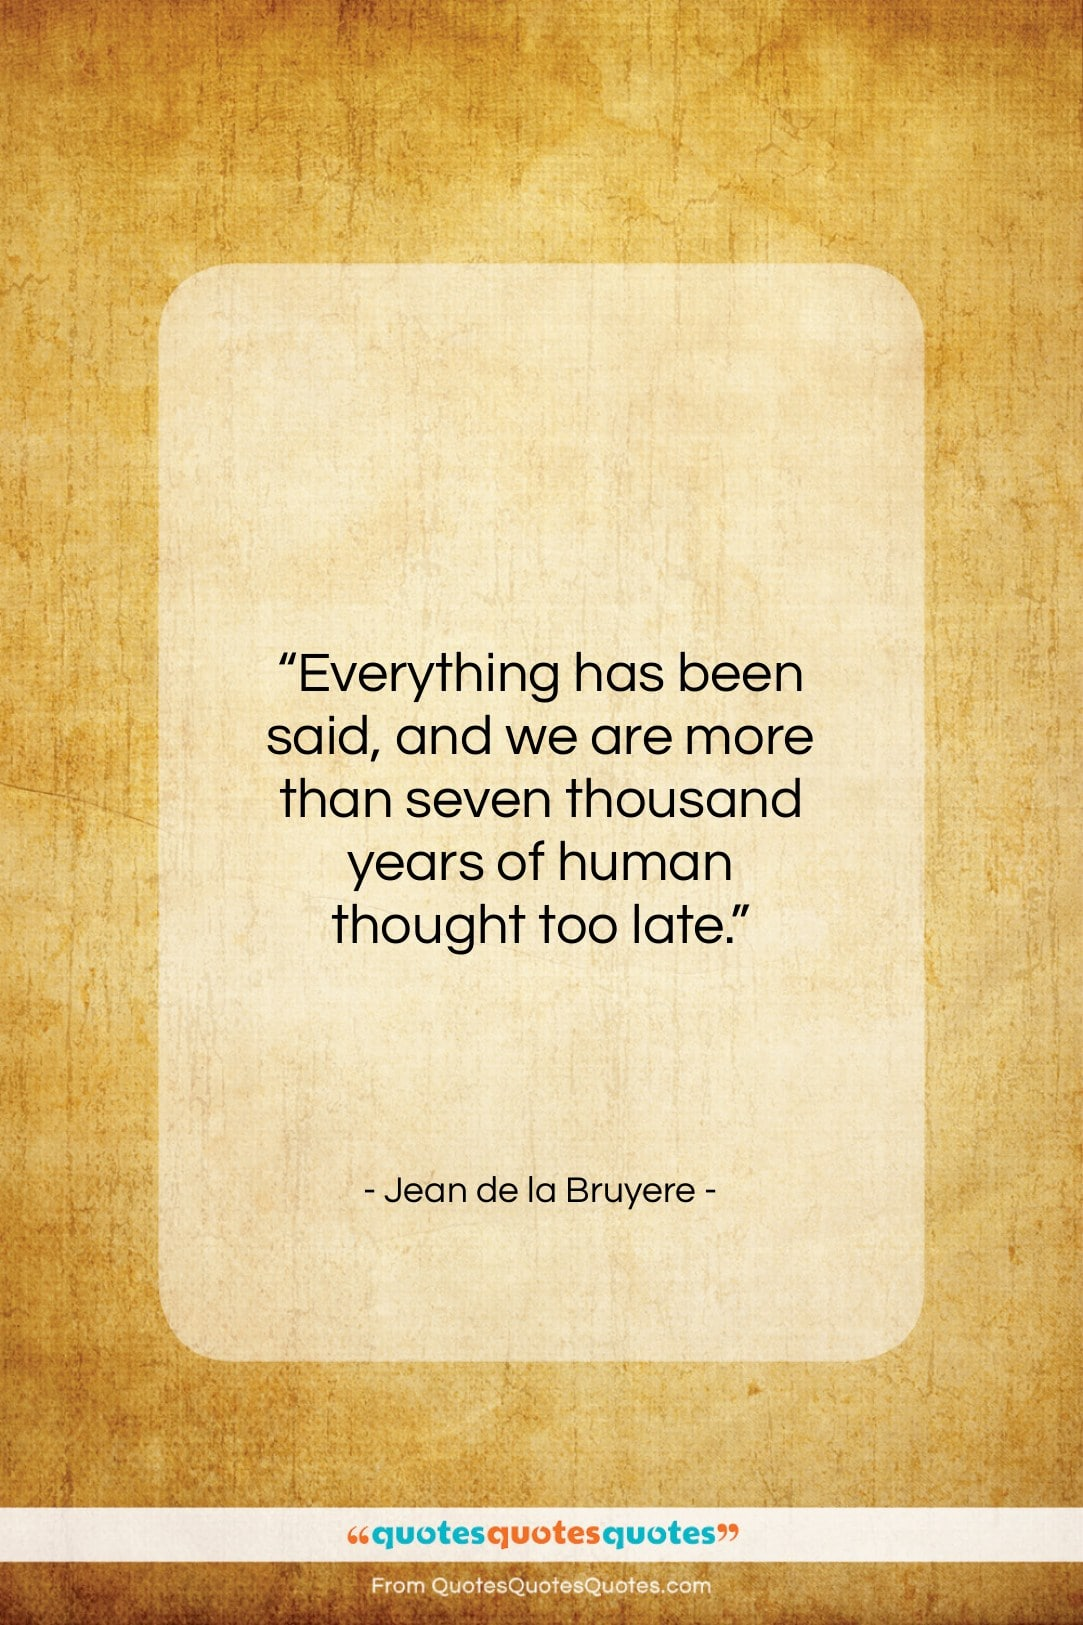 """Jean de la Bruyere quote: """"Everything has been said, and we are…""""- at QuotesQuotesQuotes.com"""